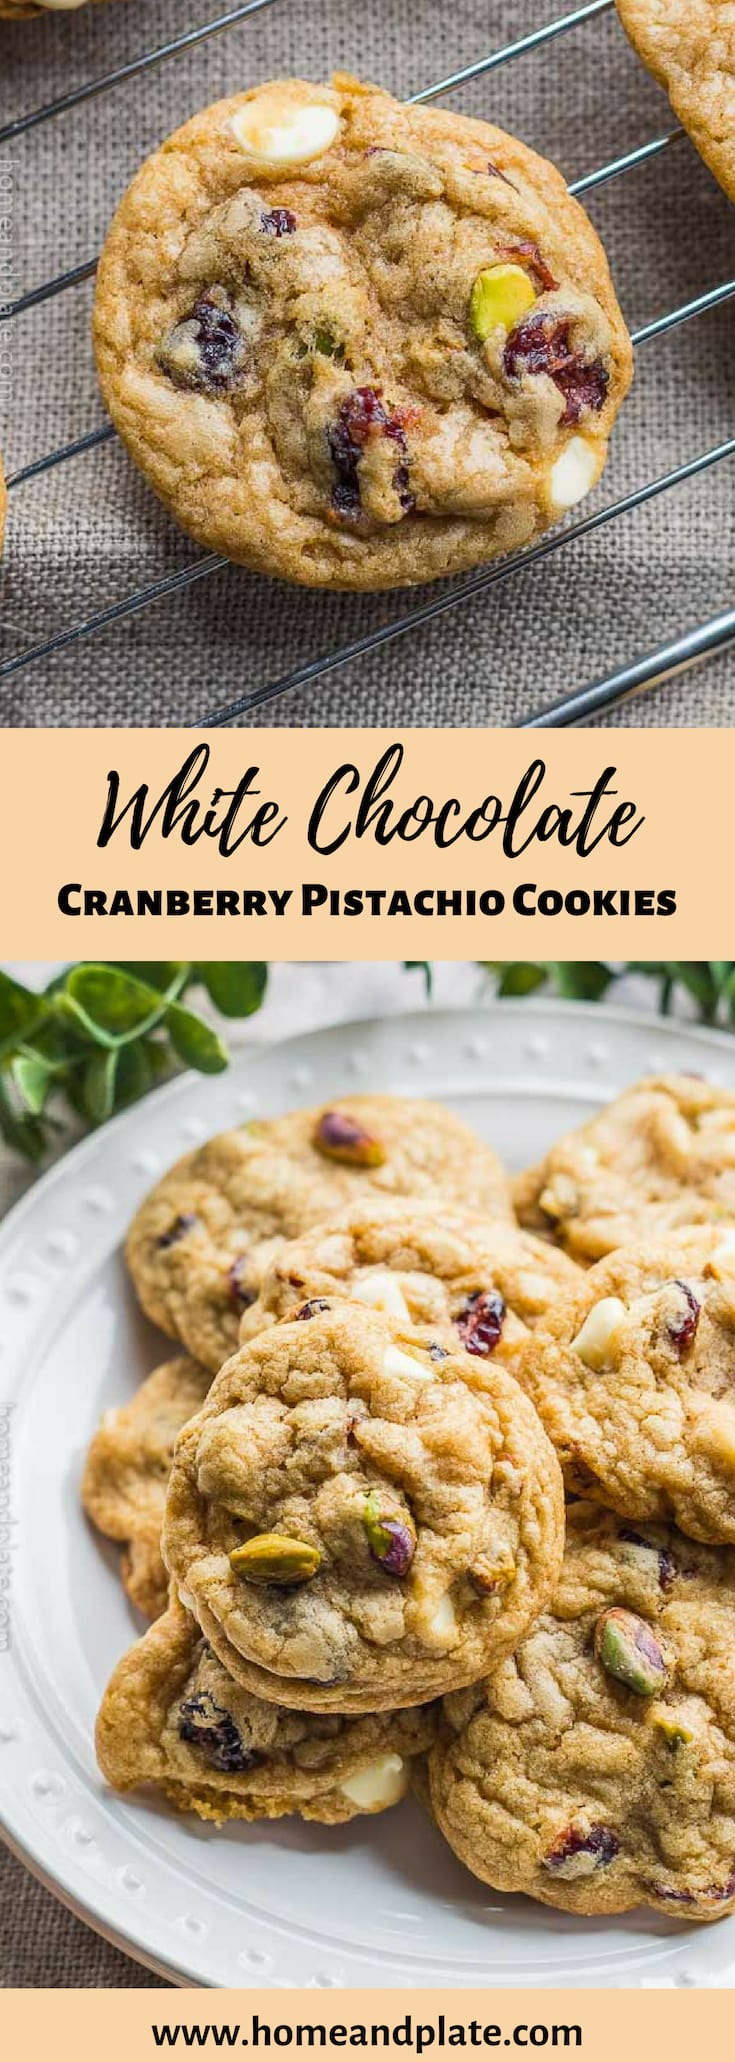 White Chocolate Cranberry Pistachio Cookies | Crispy along the edges and chewy in the center, these white chocolate cranberry pistachio cookies are perfect for the holidays. #christmascookies #pistachiocookies #cranberrywhitechocolatecookies #cranberrypistachiocookies